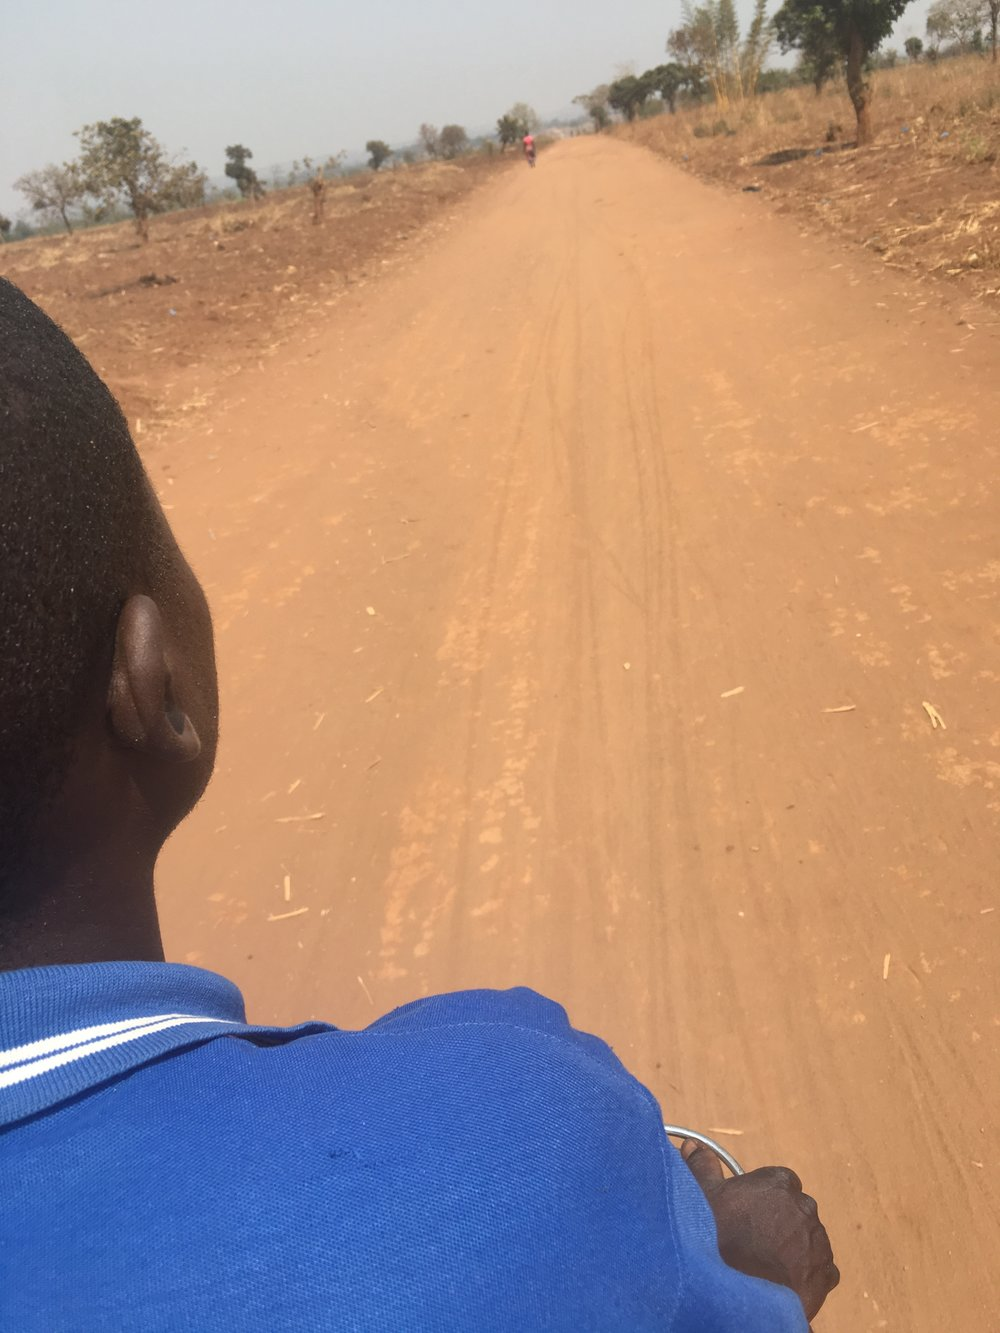 Riding on the back of a kabaza down a road some of our surgical patients walked to be treated by our surgical team.